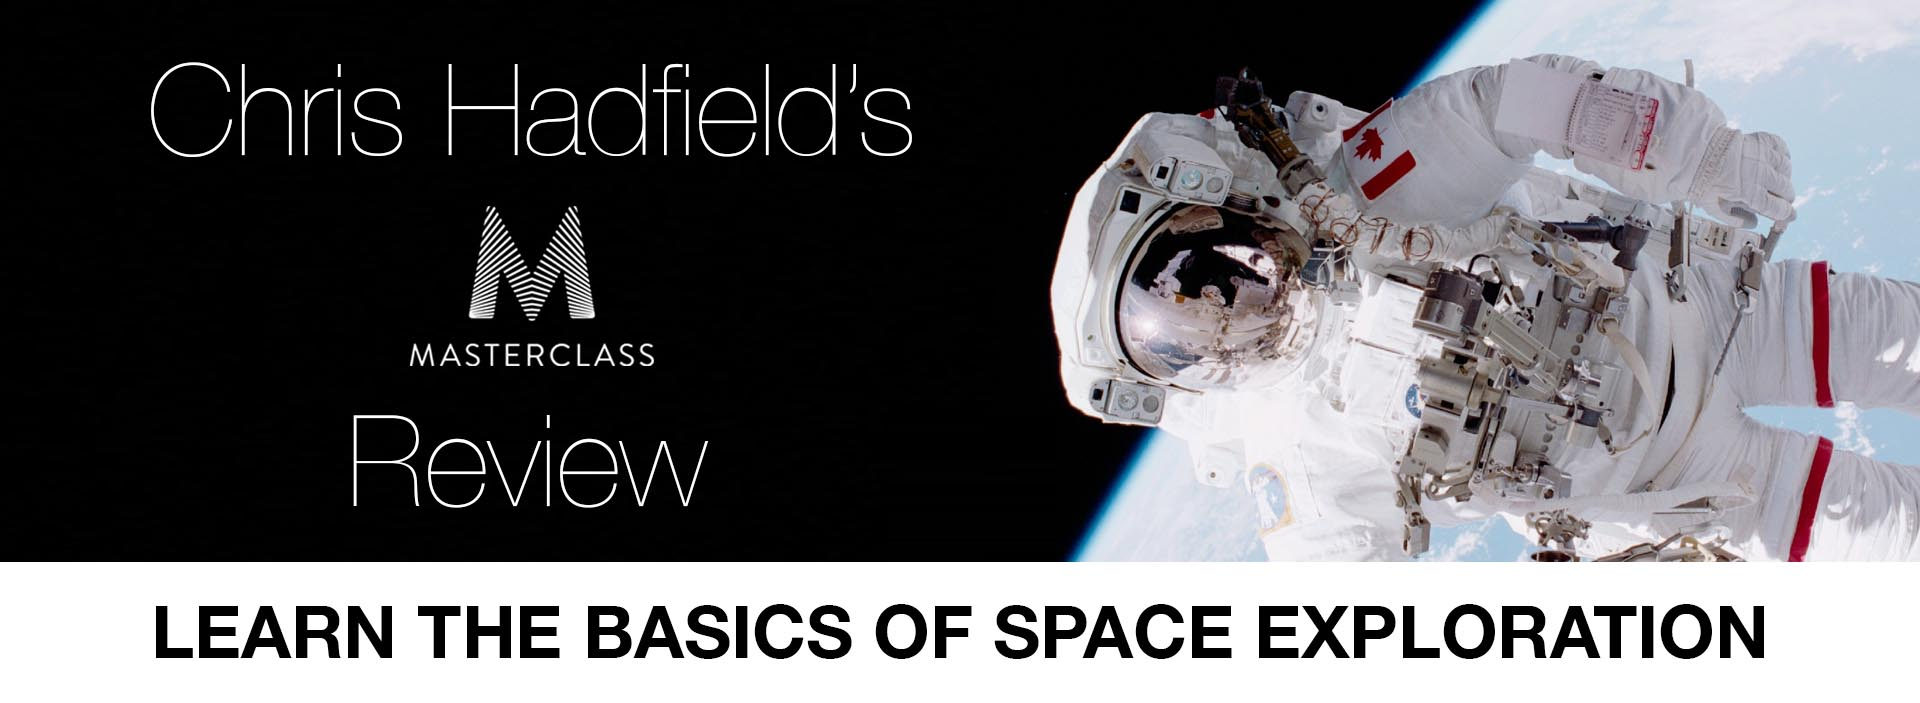 Learn the Basics of Space Exploration: Chris Hadfield's MasterClass Review